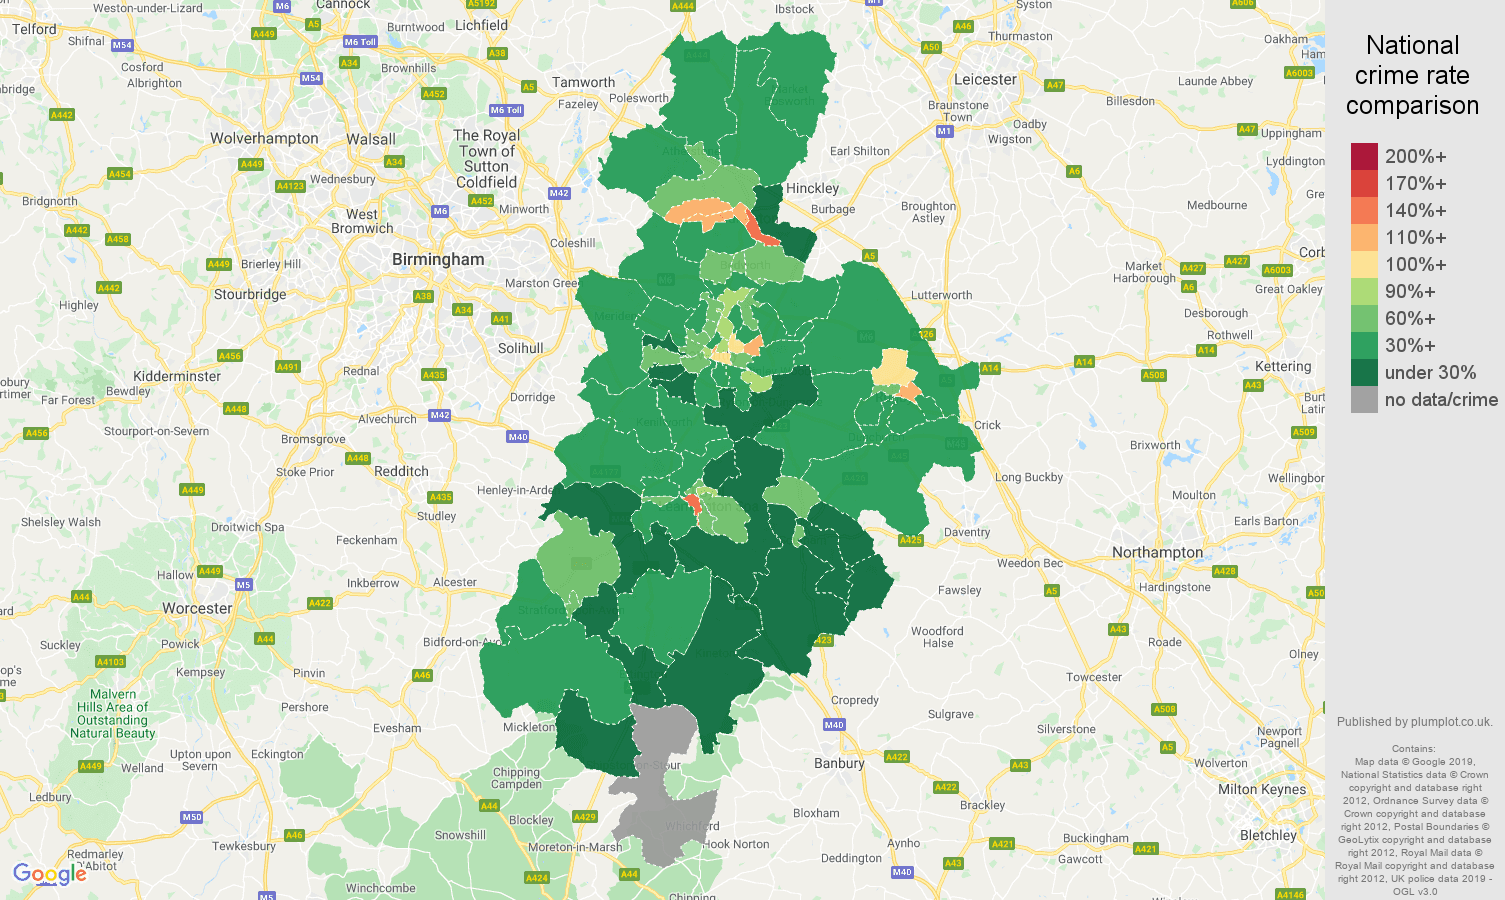 Coventry public order crime rate comparison map